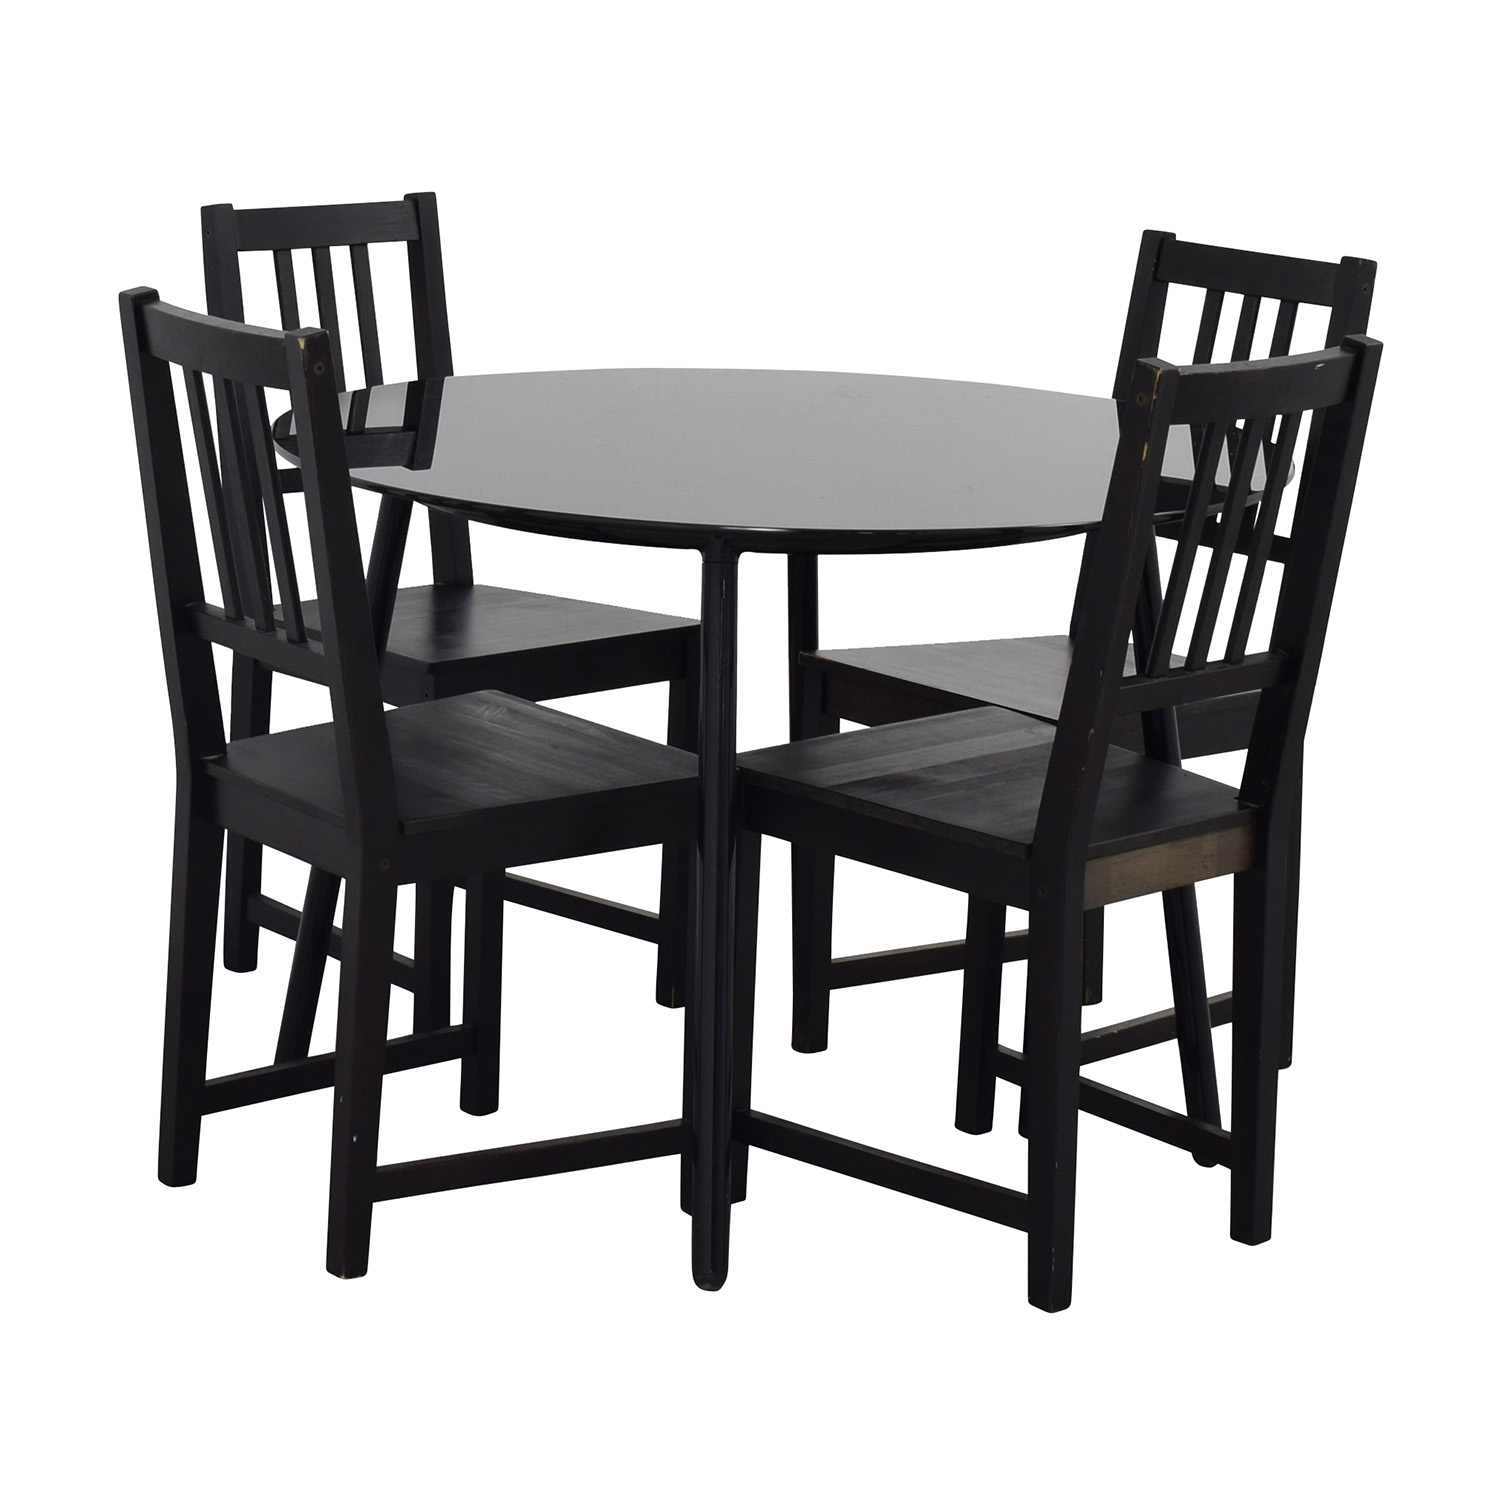 31 off ikea ikea glass and wood table and chairs tables - Glass dining table ikea ...